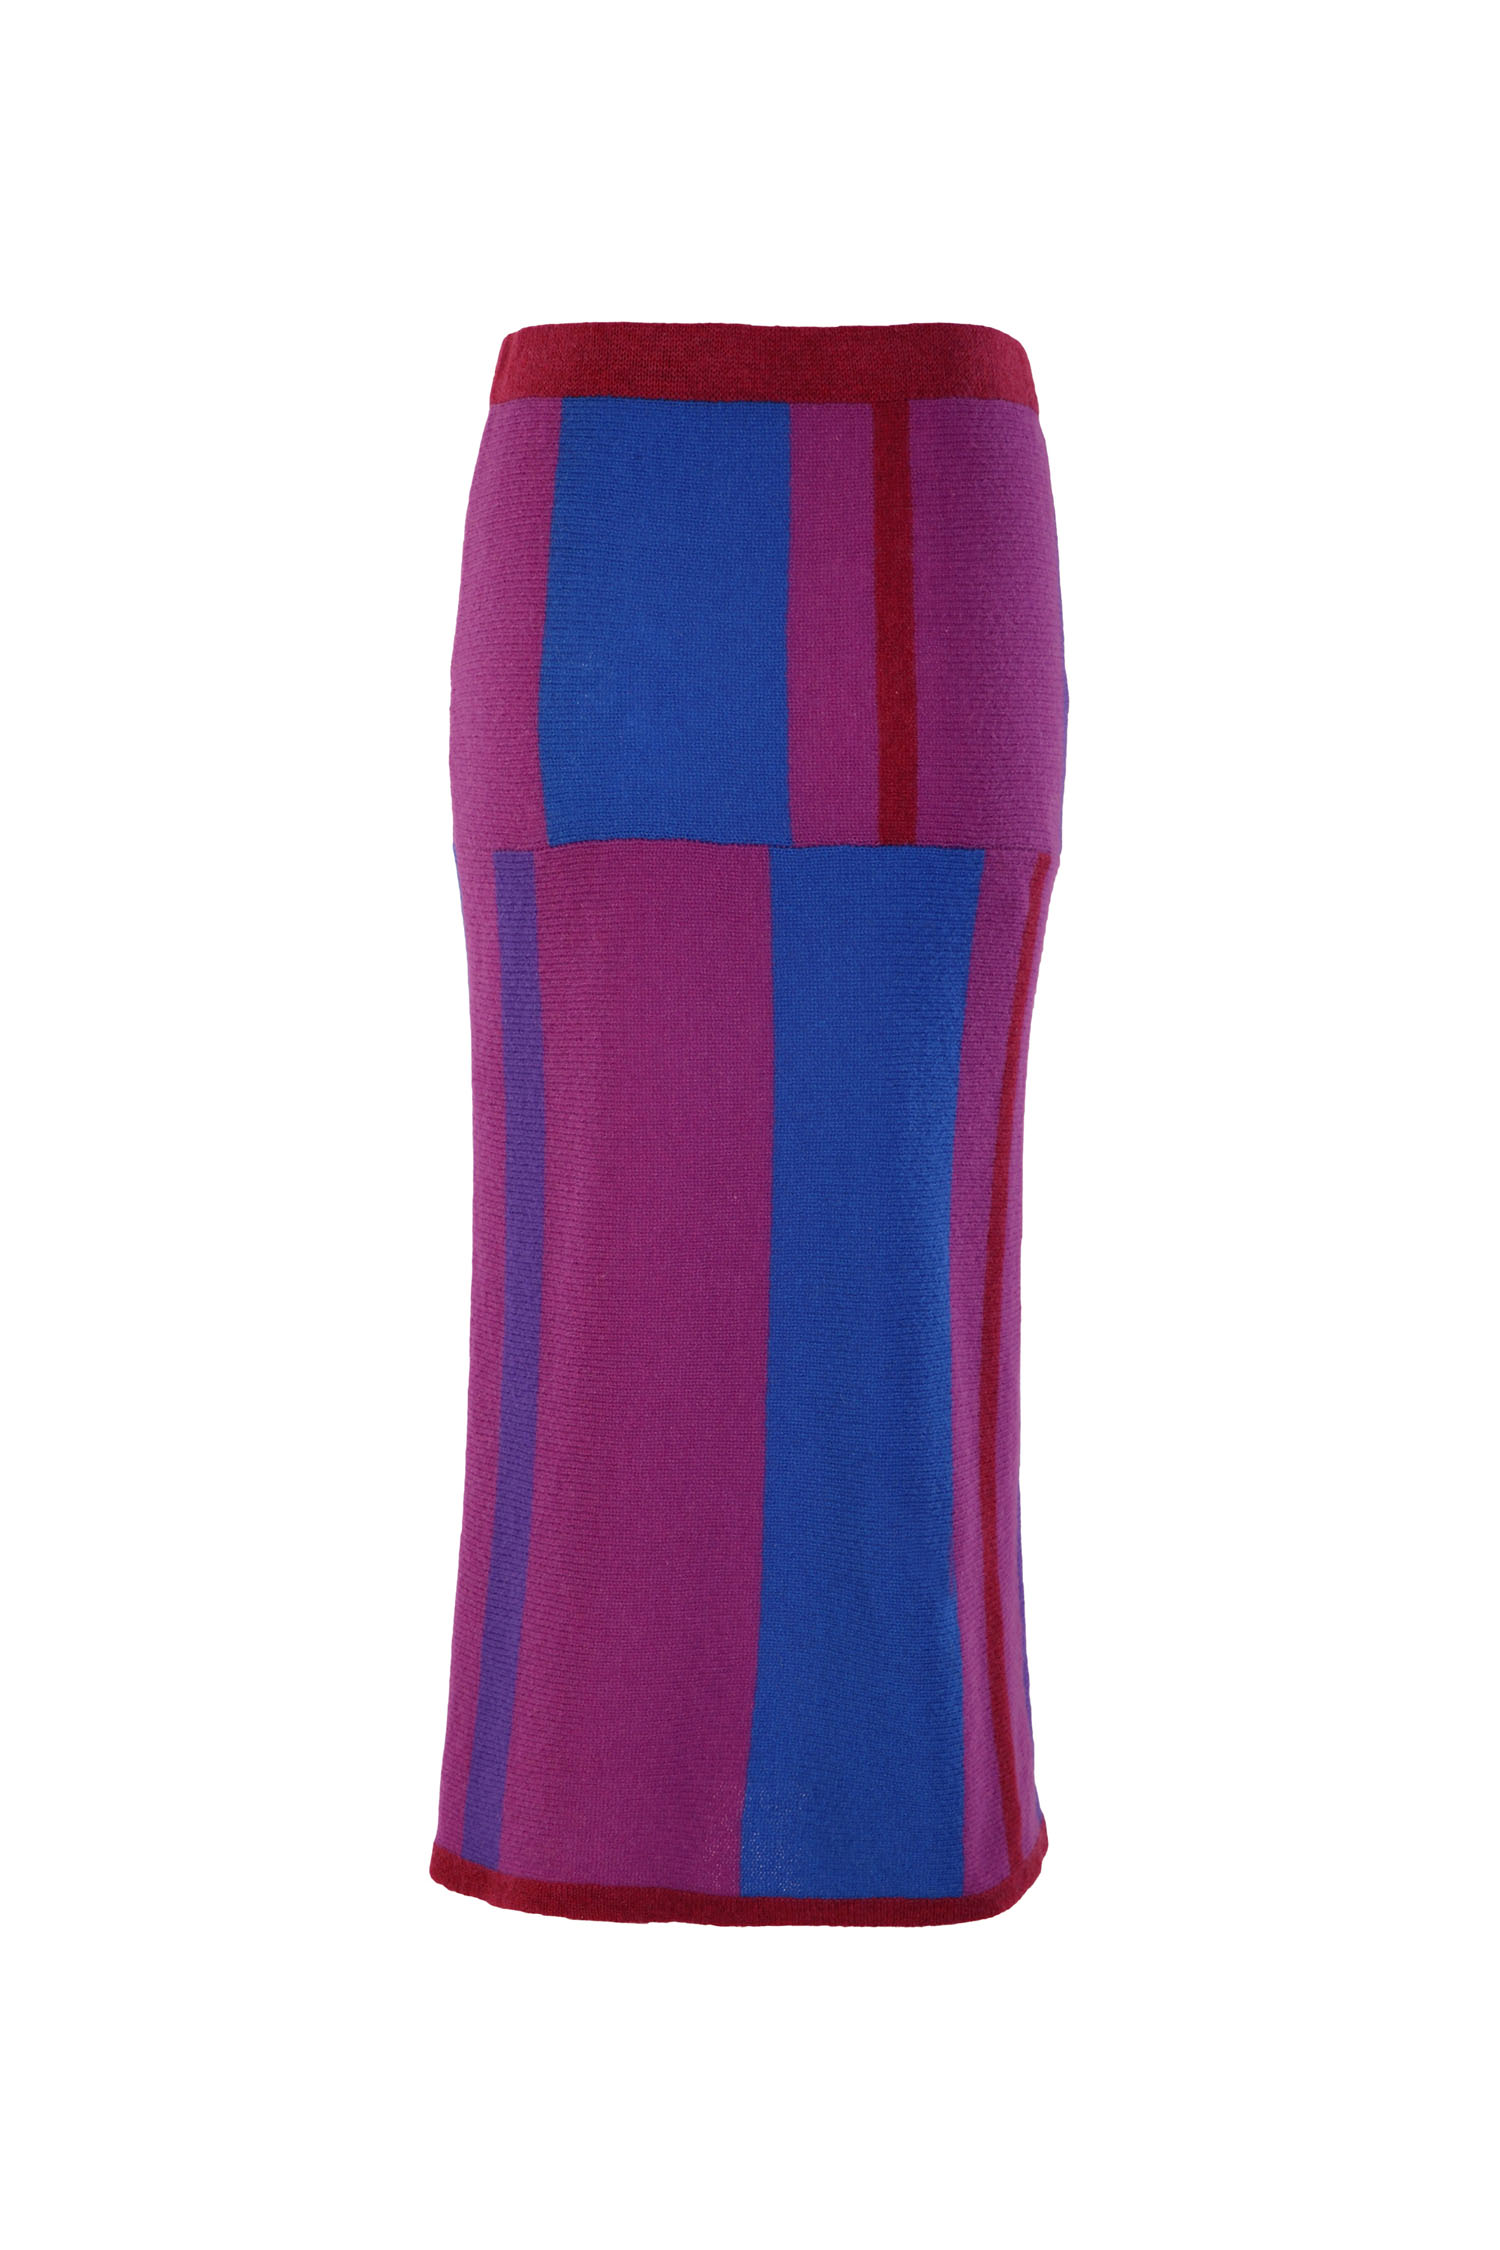 Mondrian pencil skirt3